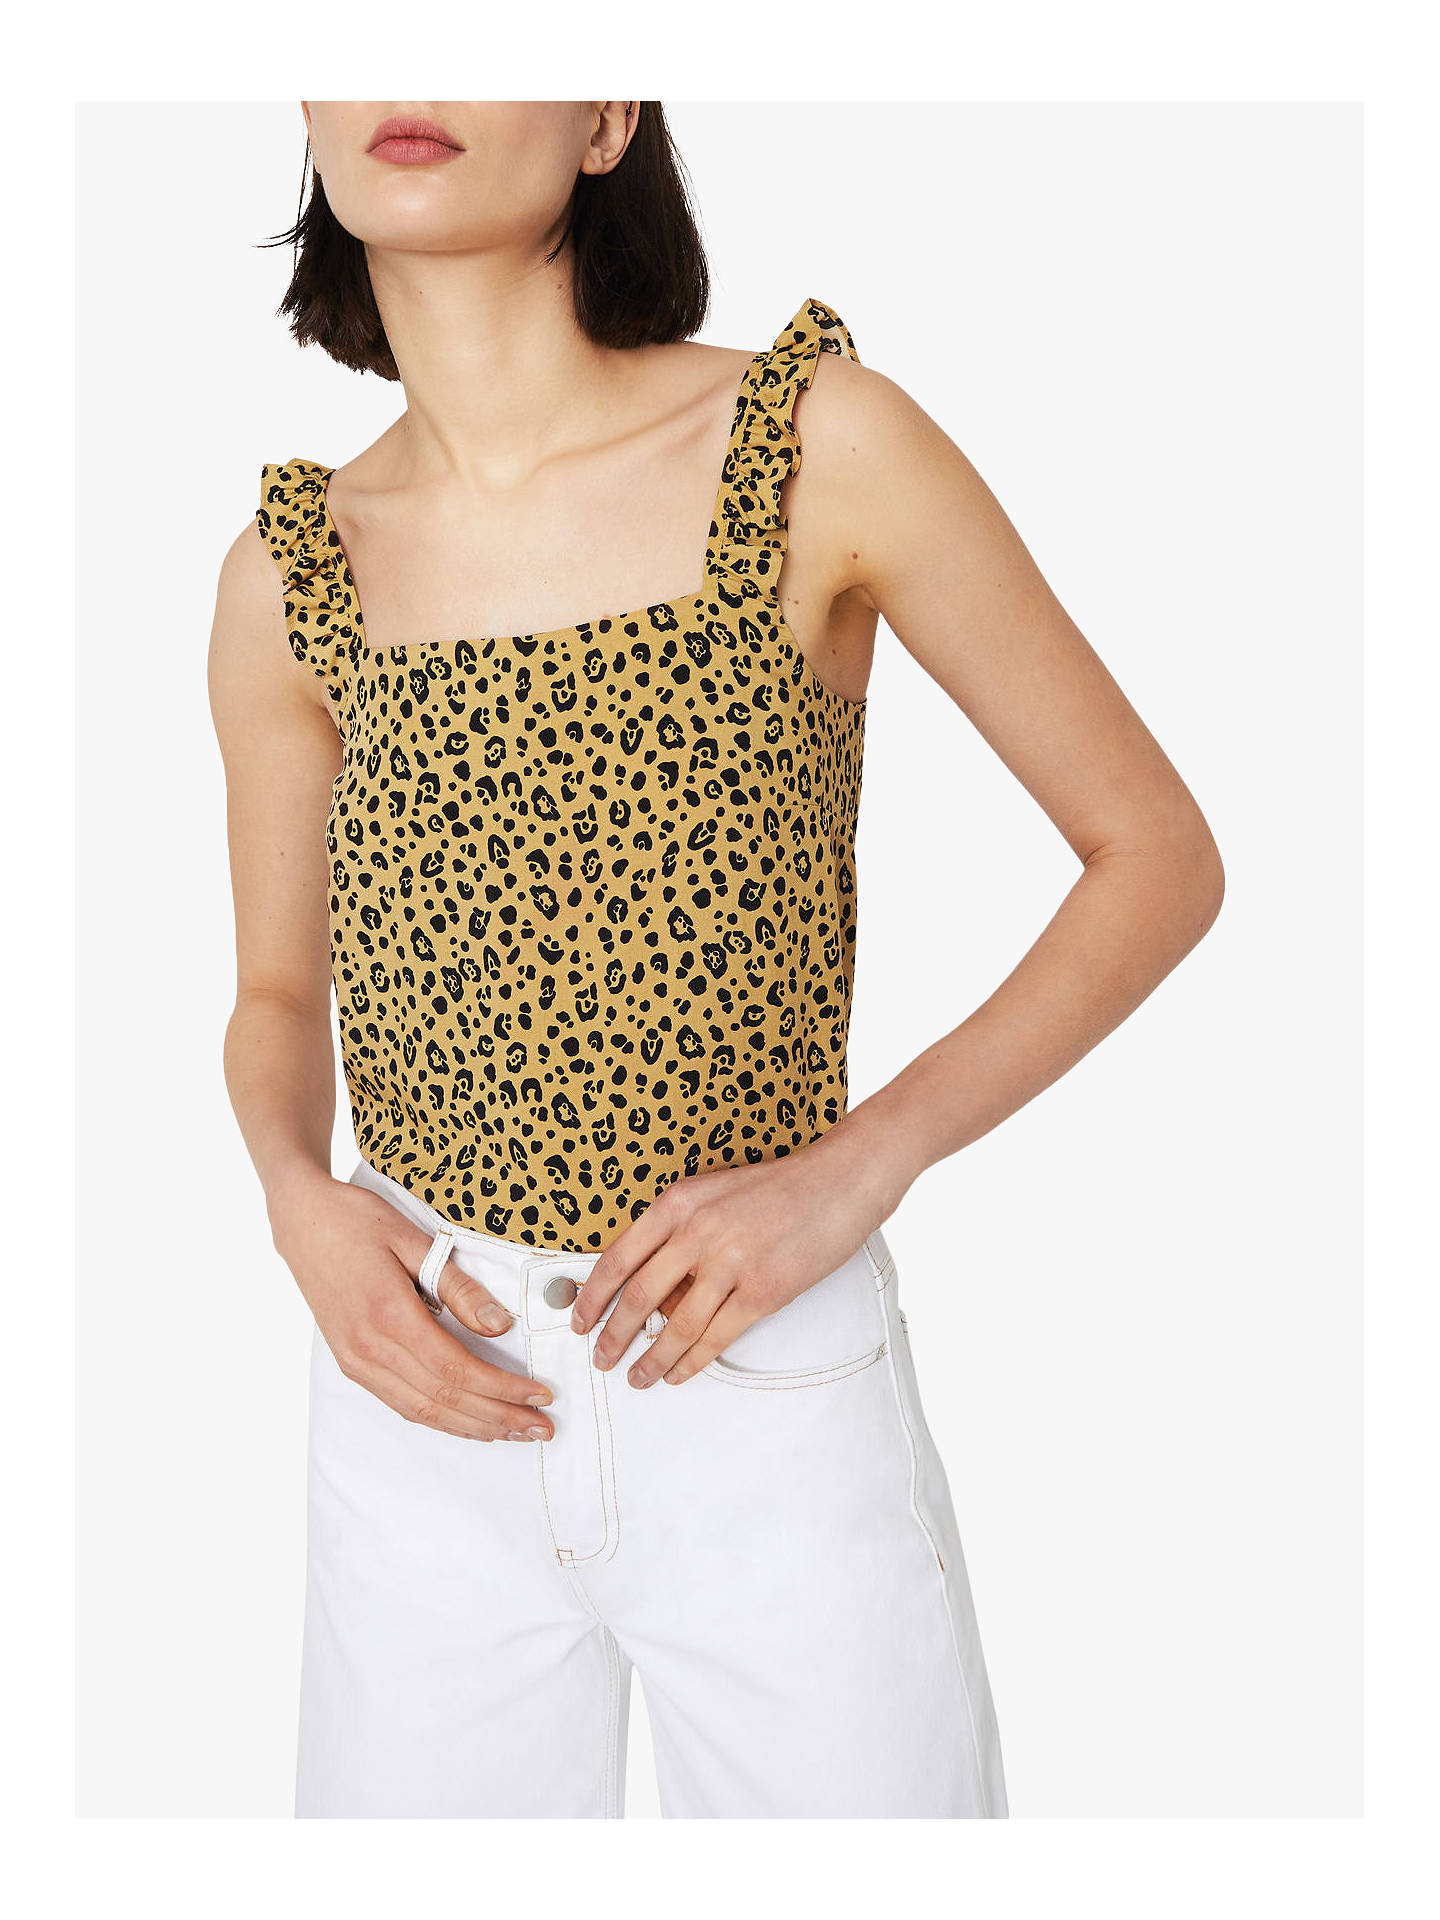 4080e0ae51b28a Buy Warehouse Leopard Print Frill Cami Top, Neutral, 8 Online at  johnlewis.com ...